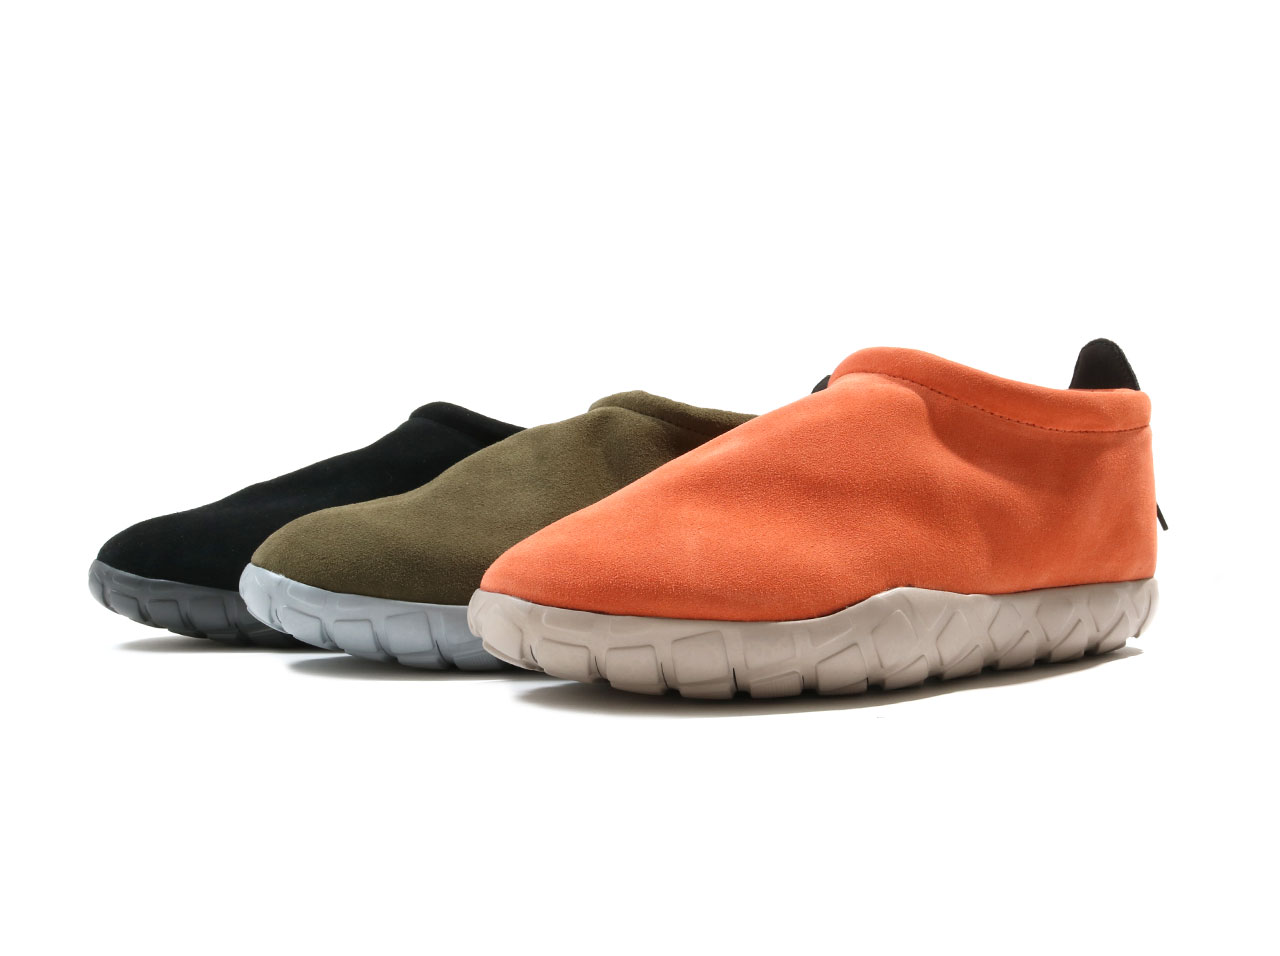 nike_air_moc_ultra__862440_004_201_800